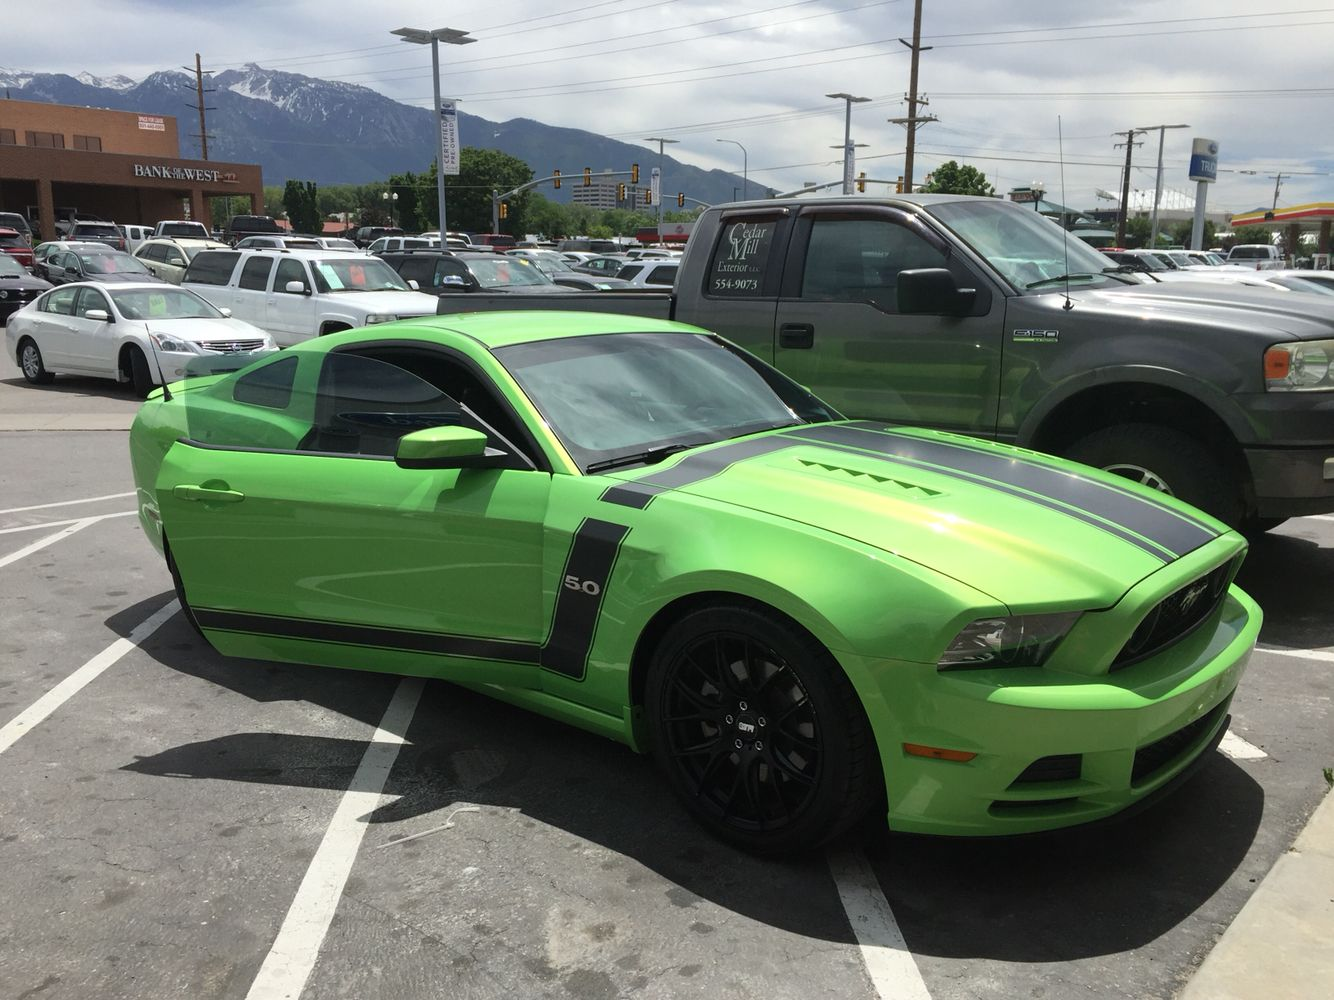 Traded my blue GT for this awesome green 5.0!!